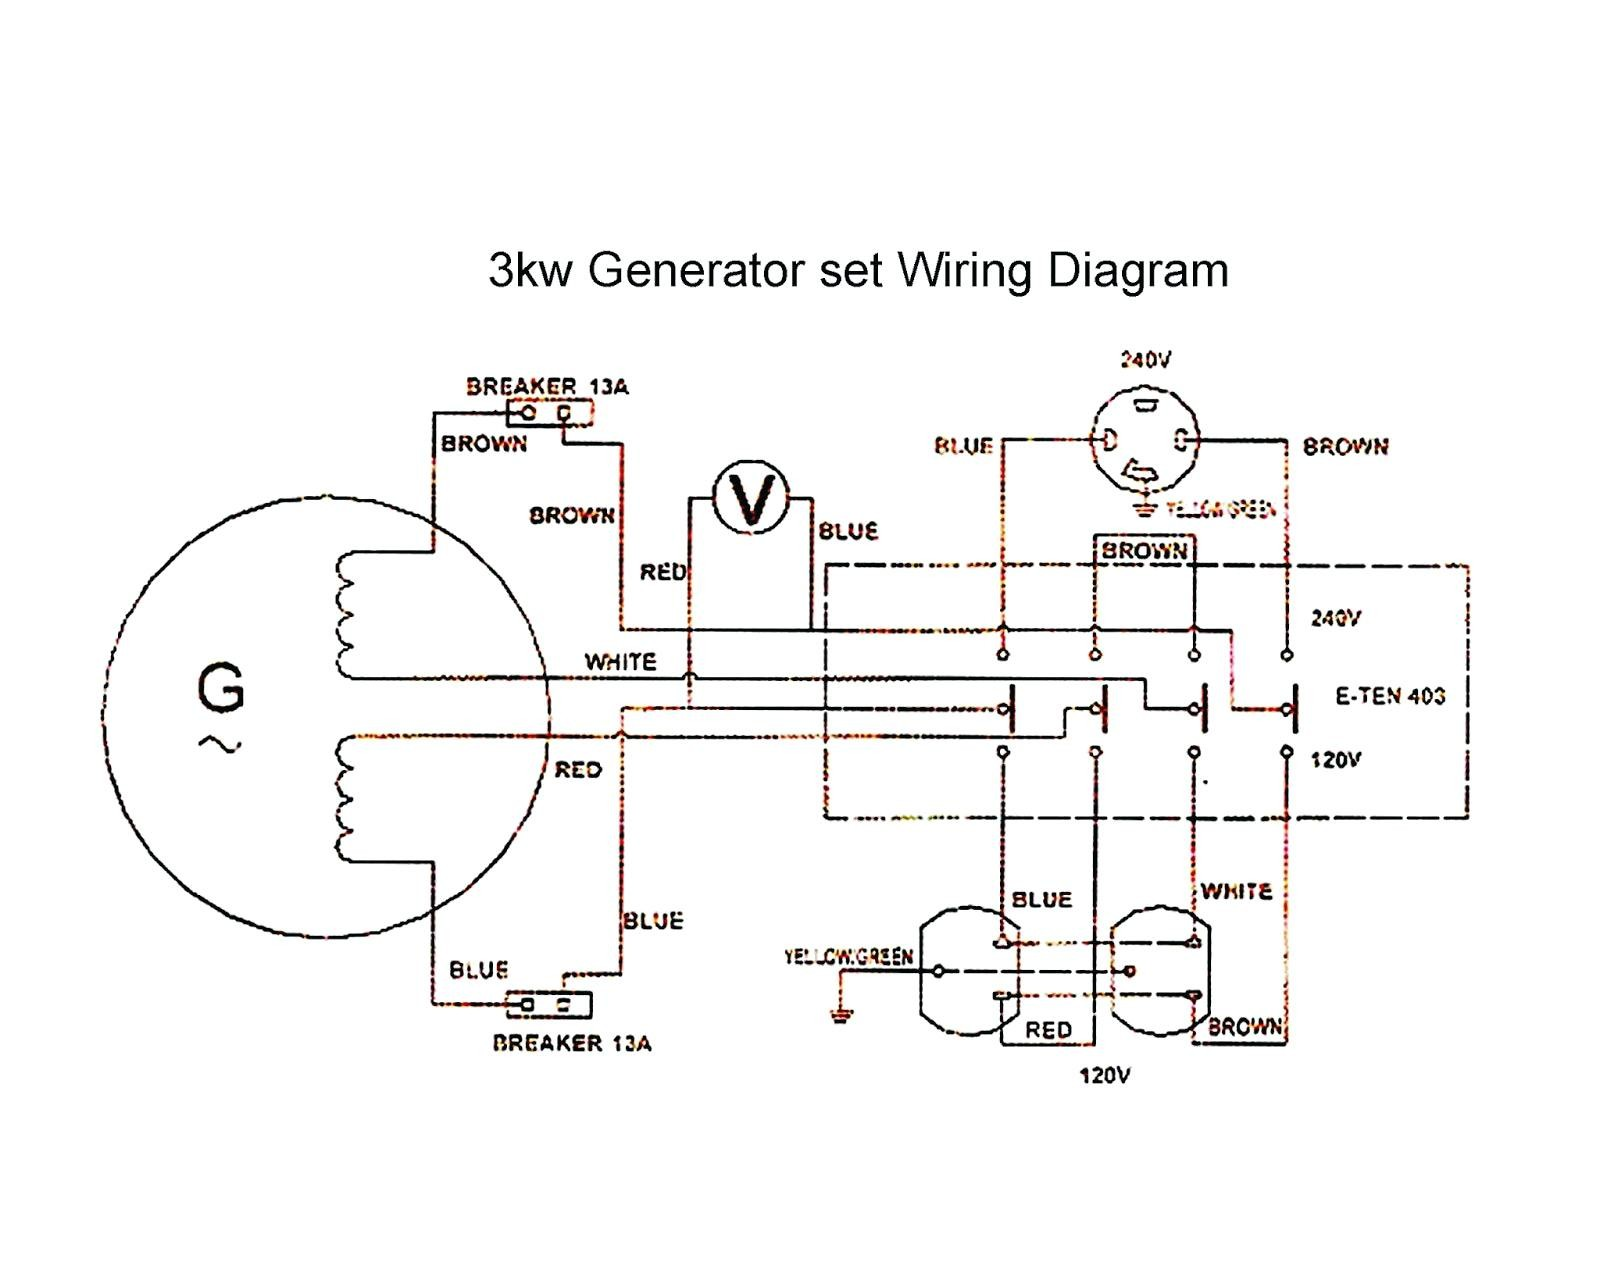 Home Generator Wiring Diagram Awesome Standby Generator Wiring Diagram Contemporary Everything Of Home Generator Wiring Diagram